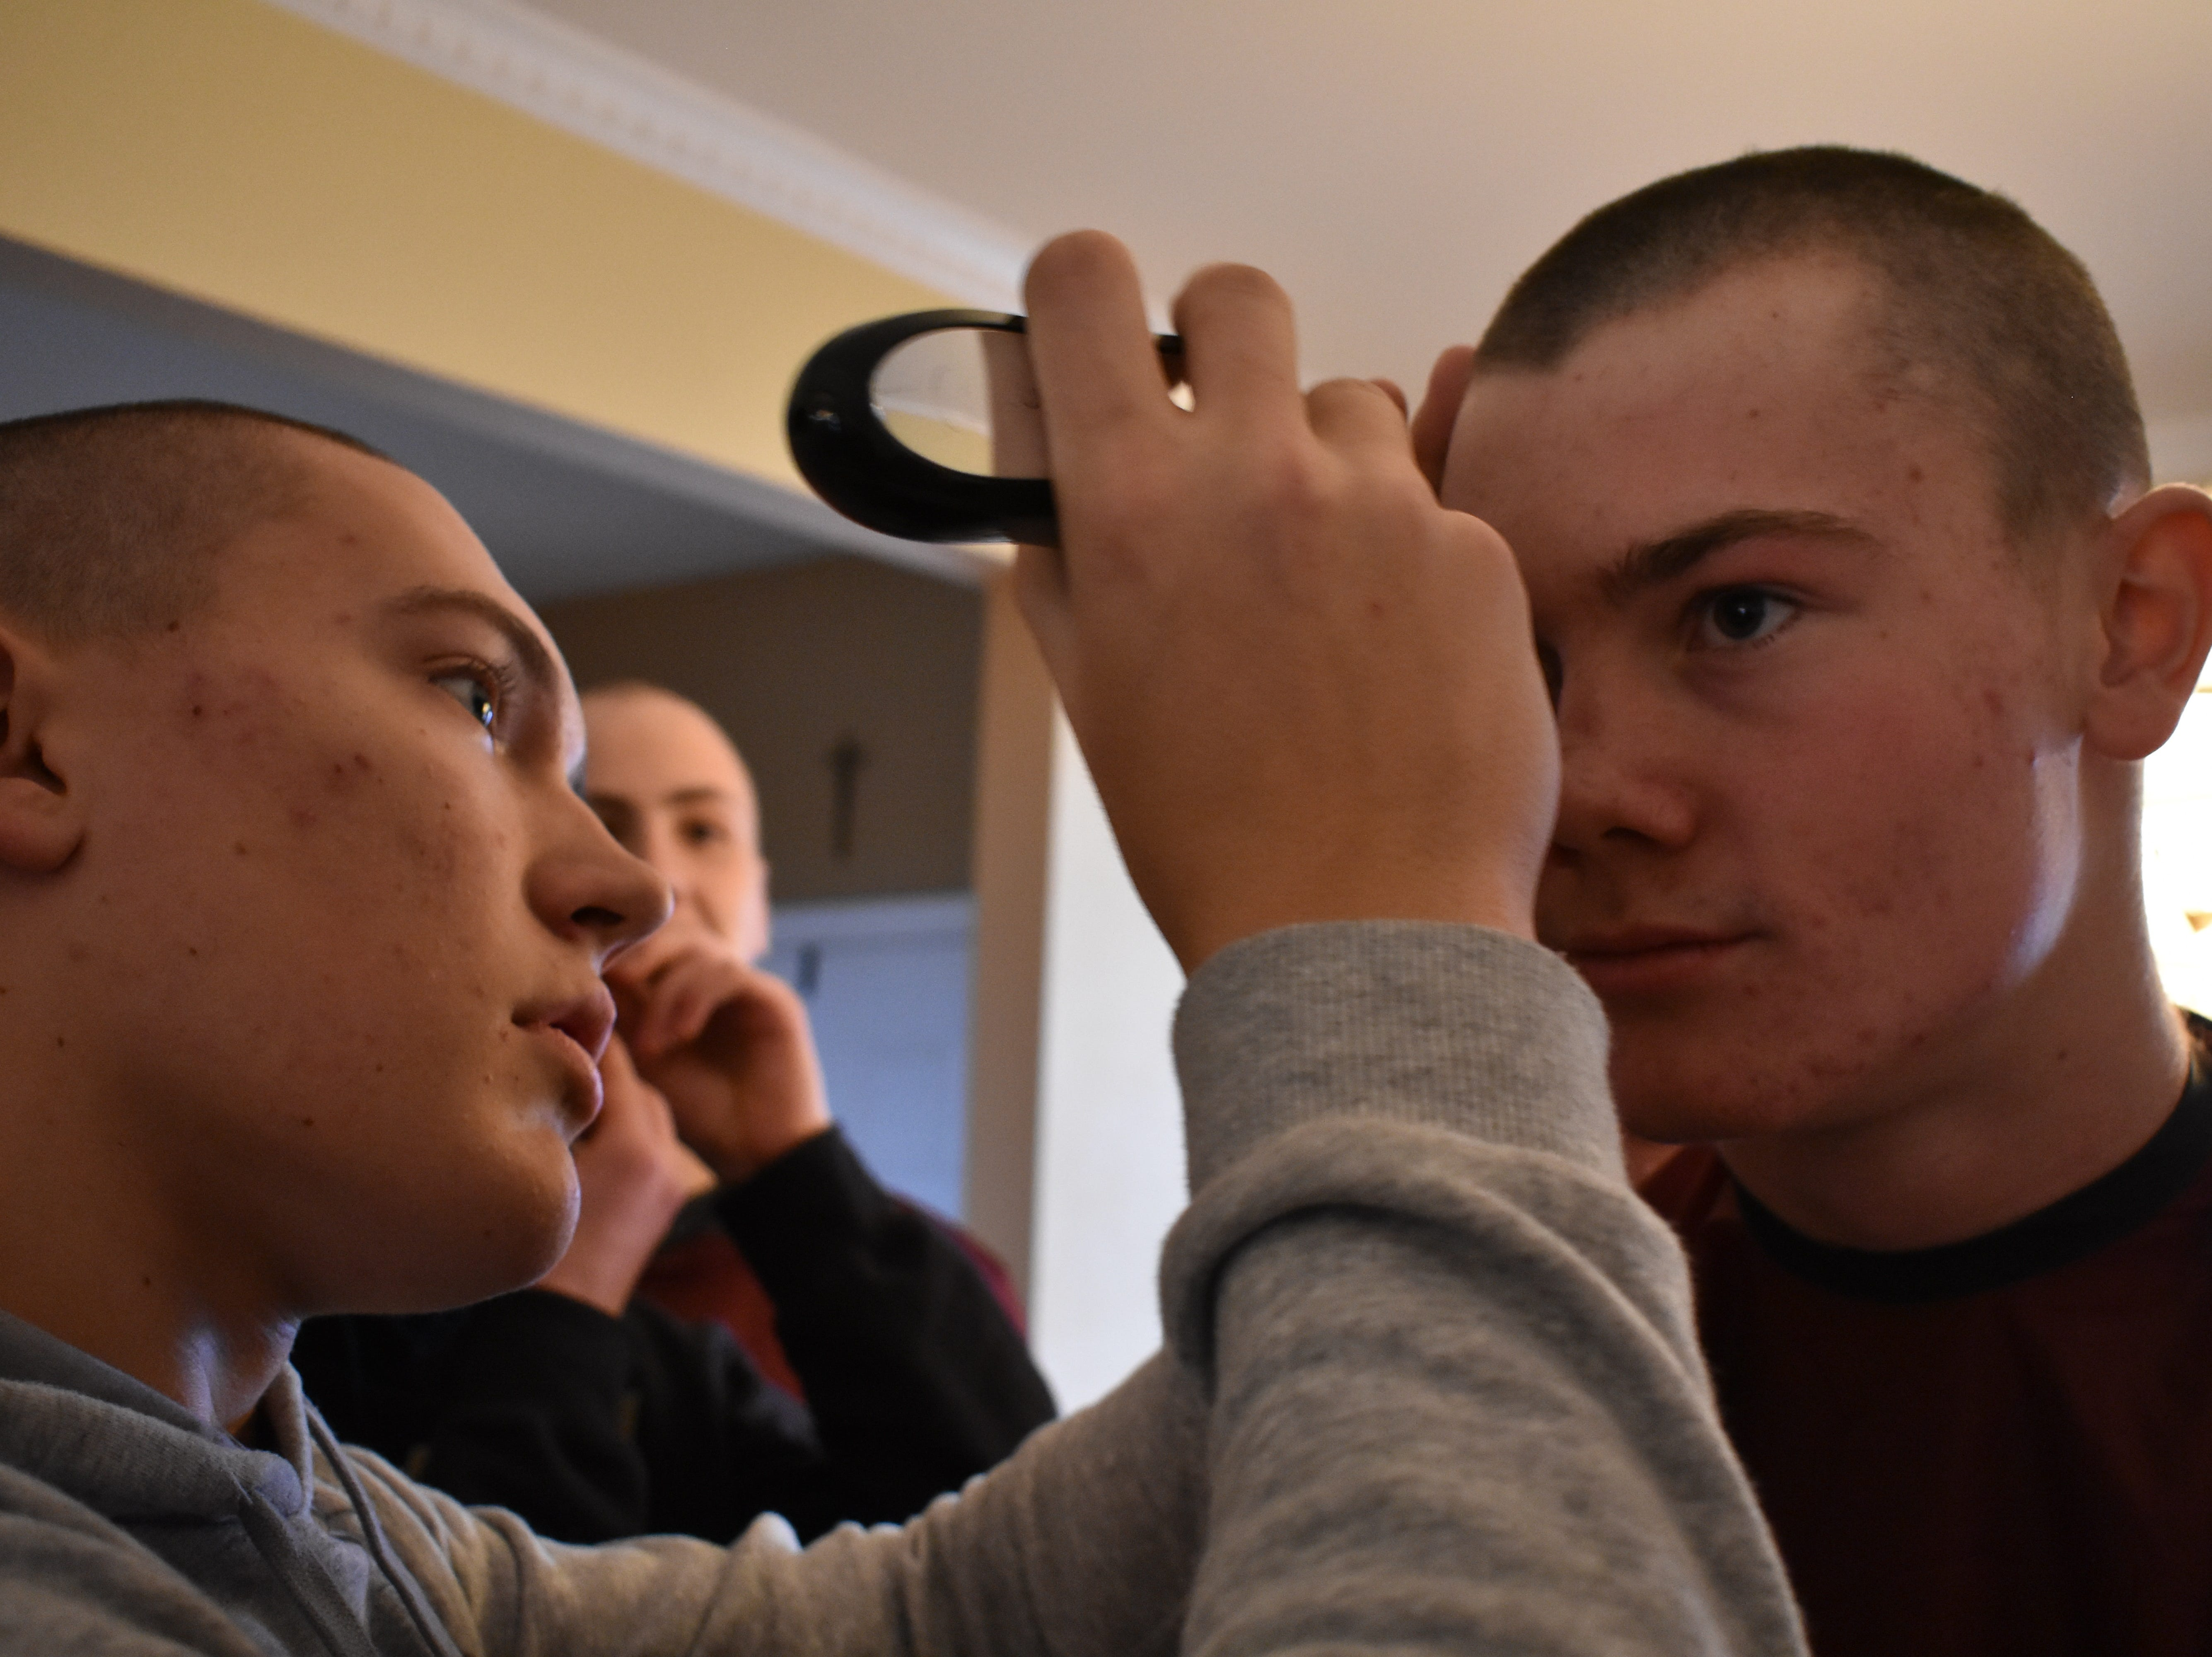 Rocky Mountain basketball player Peter Krohn shaves a mark into the eyebrow of teammate Dawson Otto Dec. 31, 2018, in support of teammate Carter Edgerely, who was recently diagnosed with bone cancer.